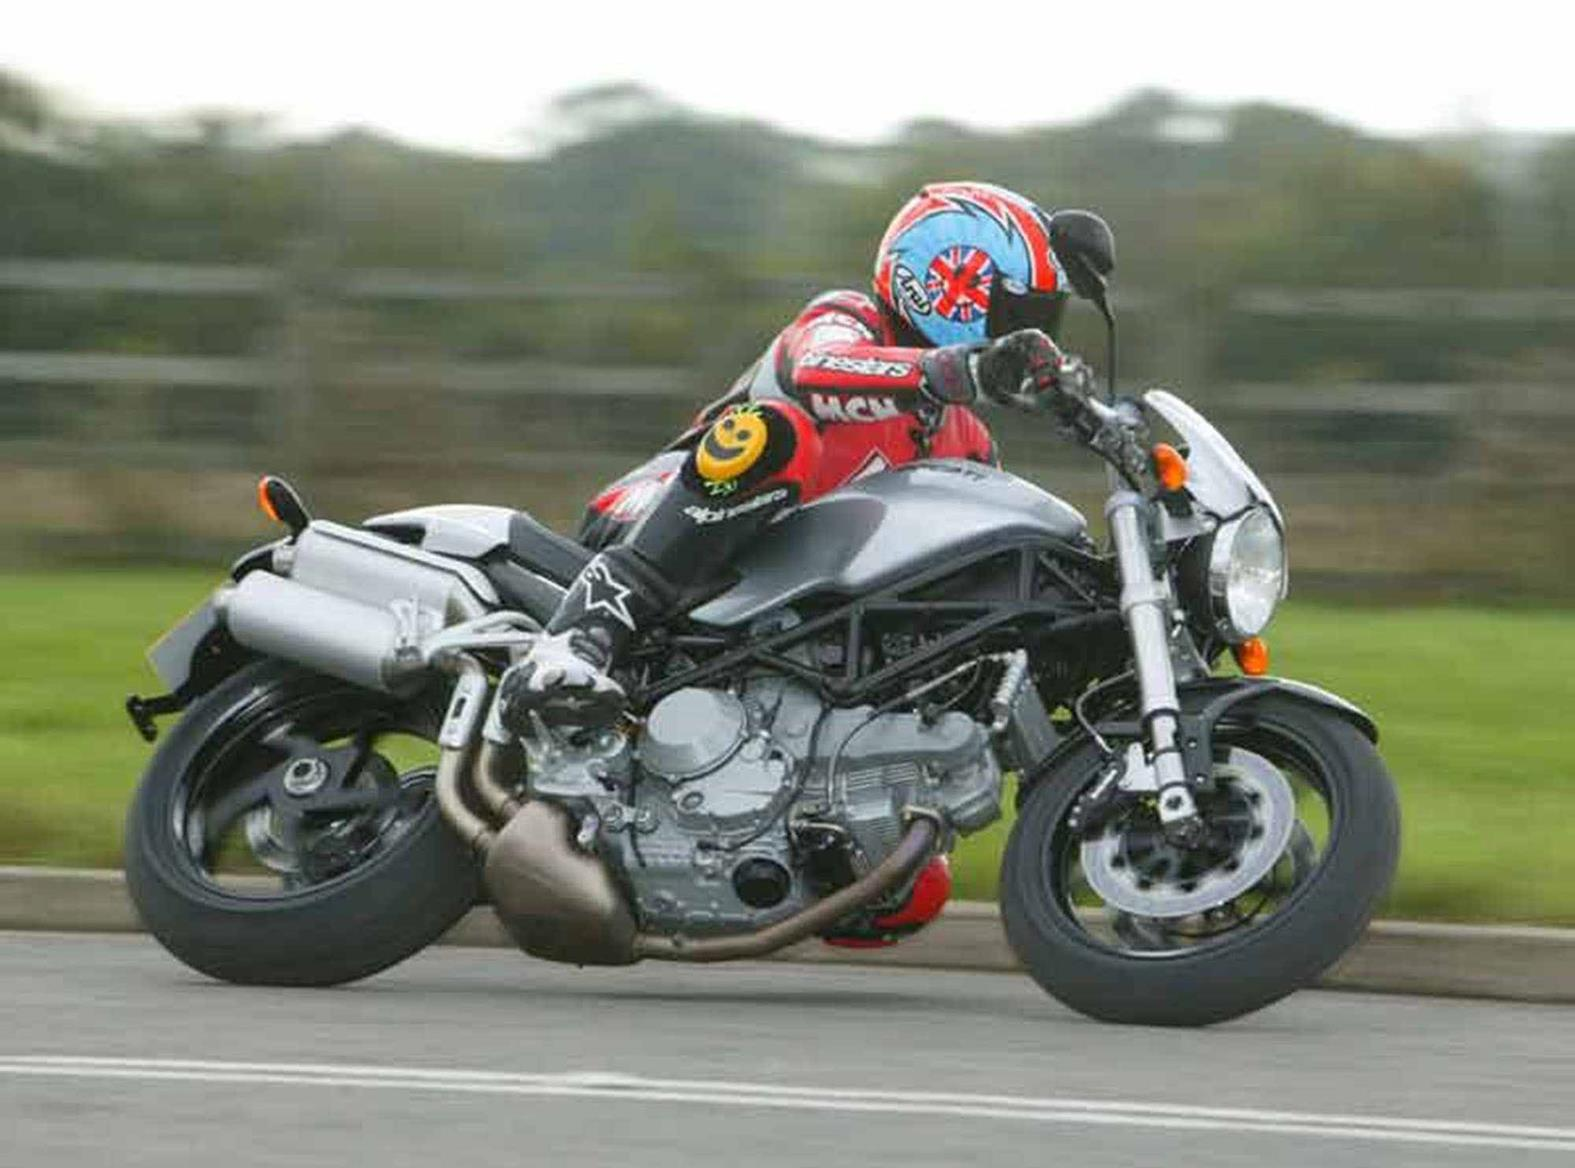 Ducati Monster S4 range